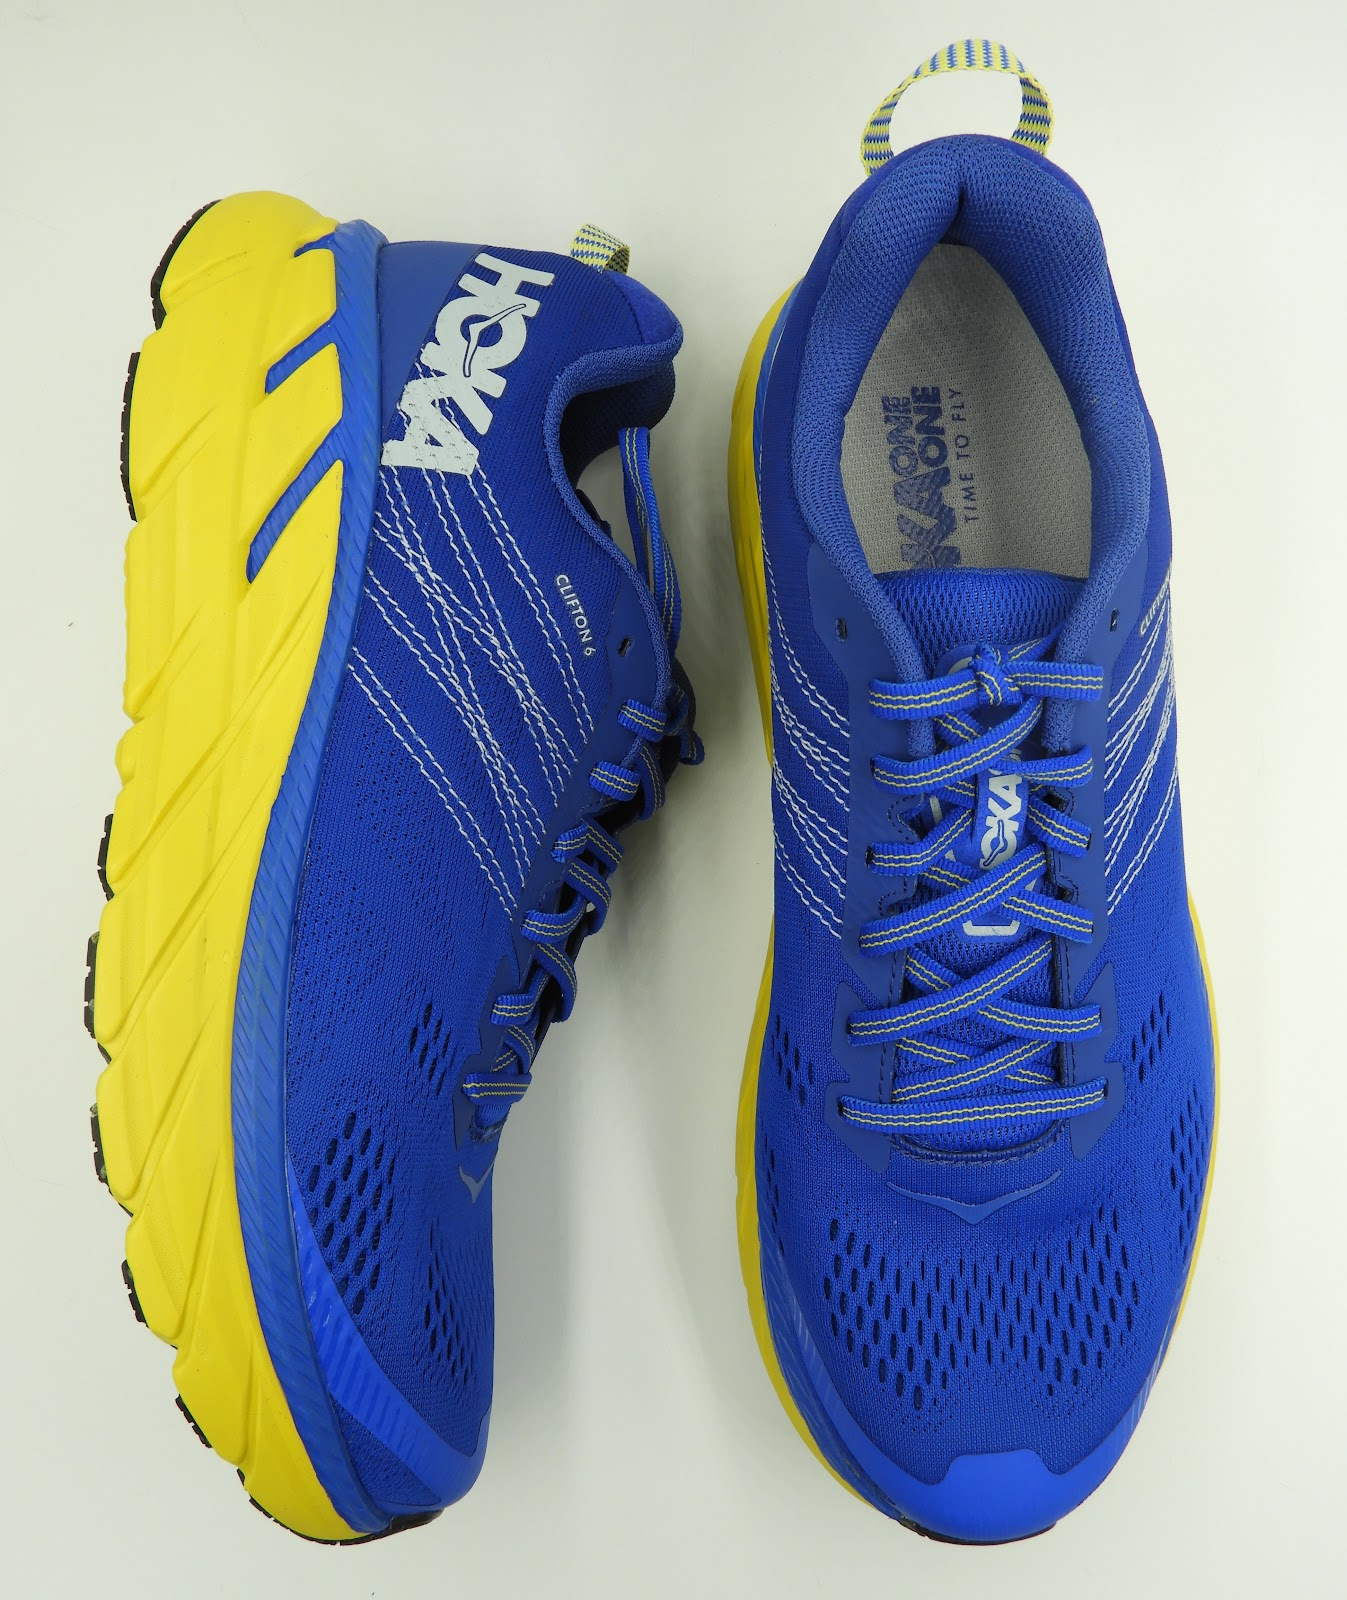 Road Trail Run: Hoka ONE ONE Clifton 6 Multi Tester Review: A New